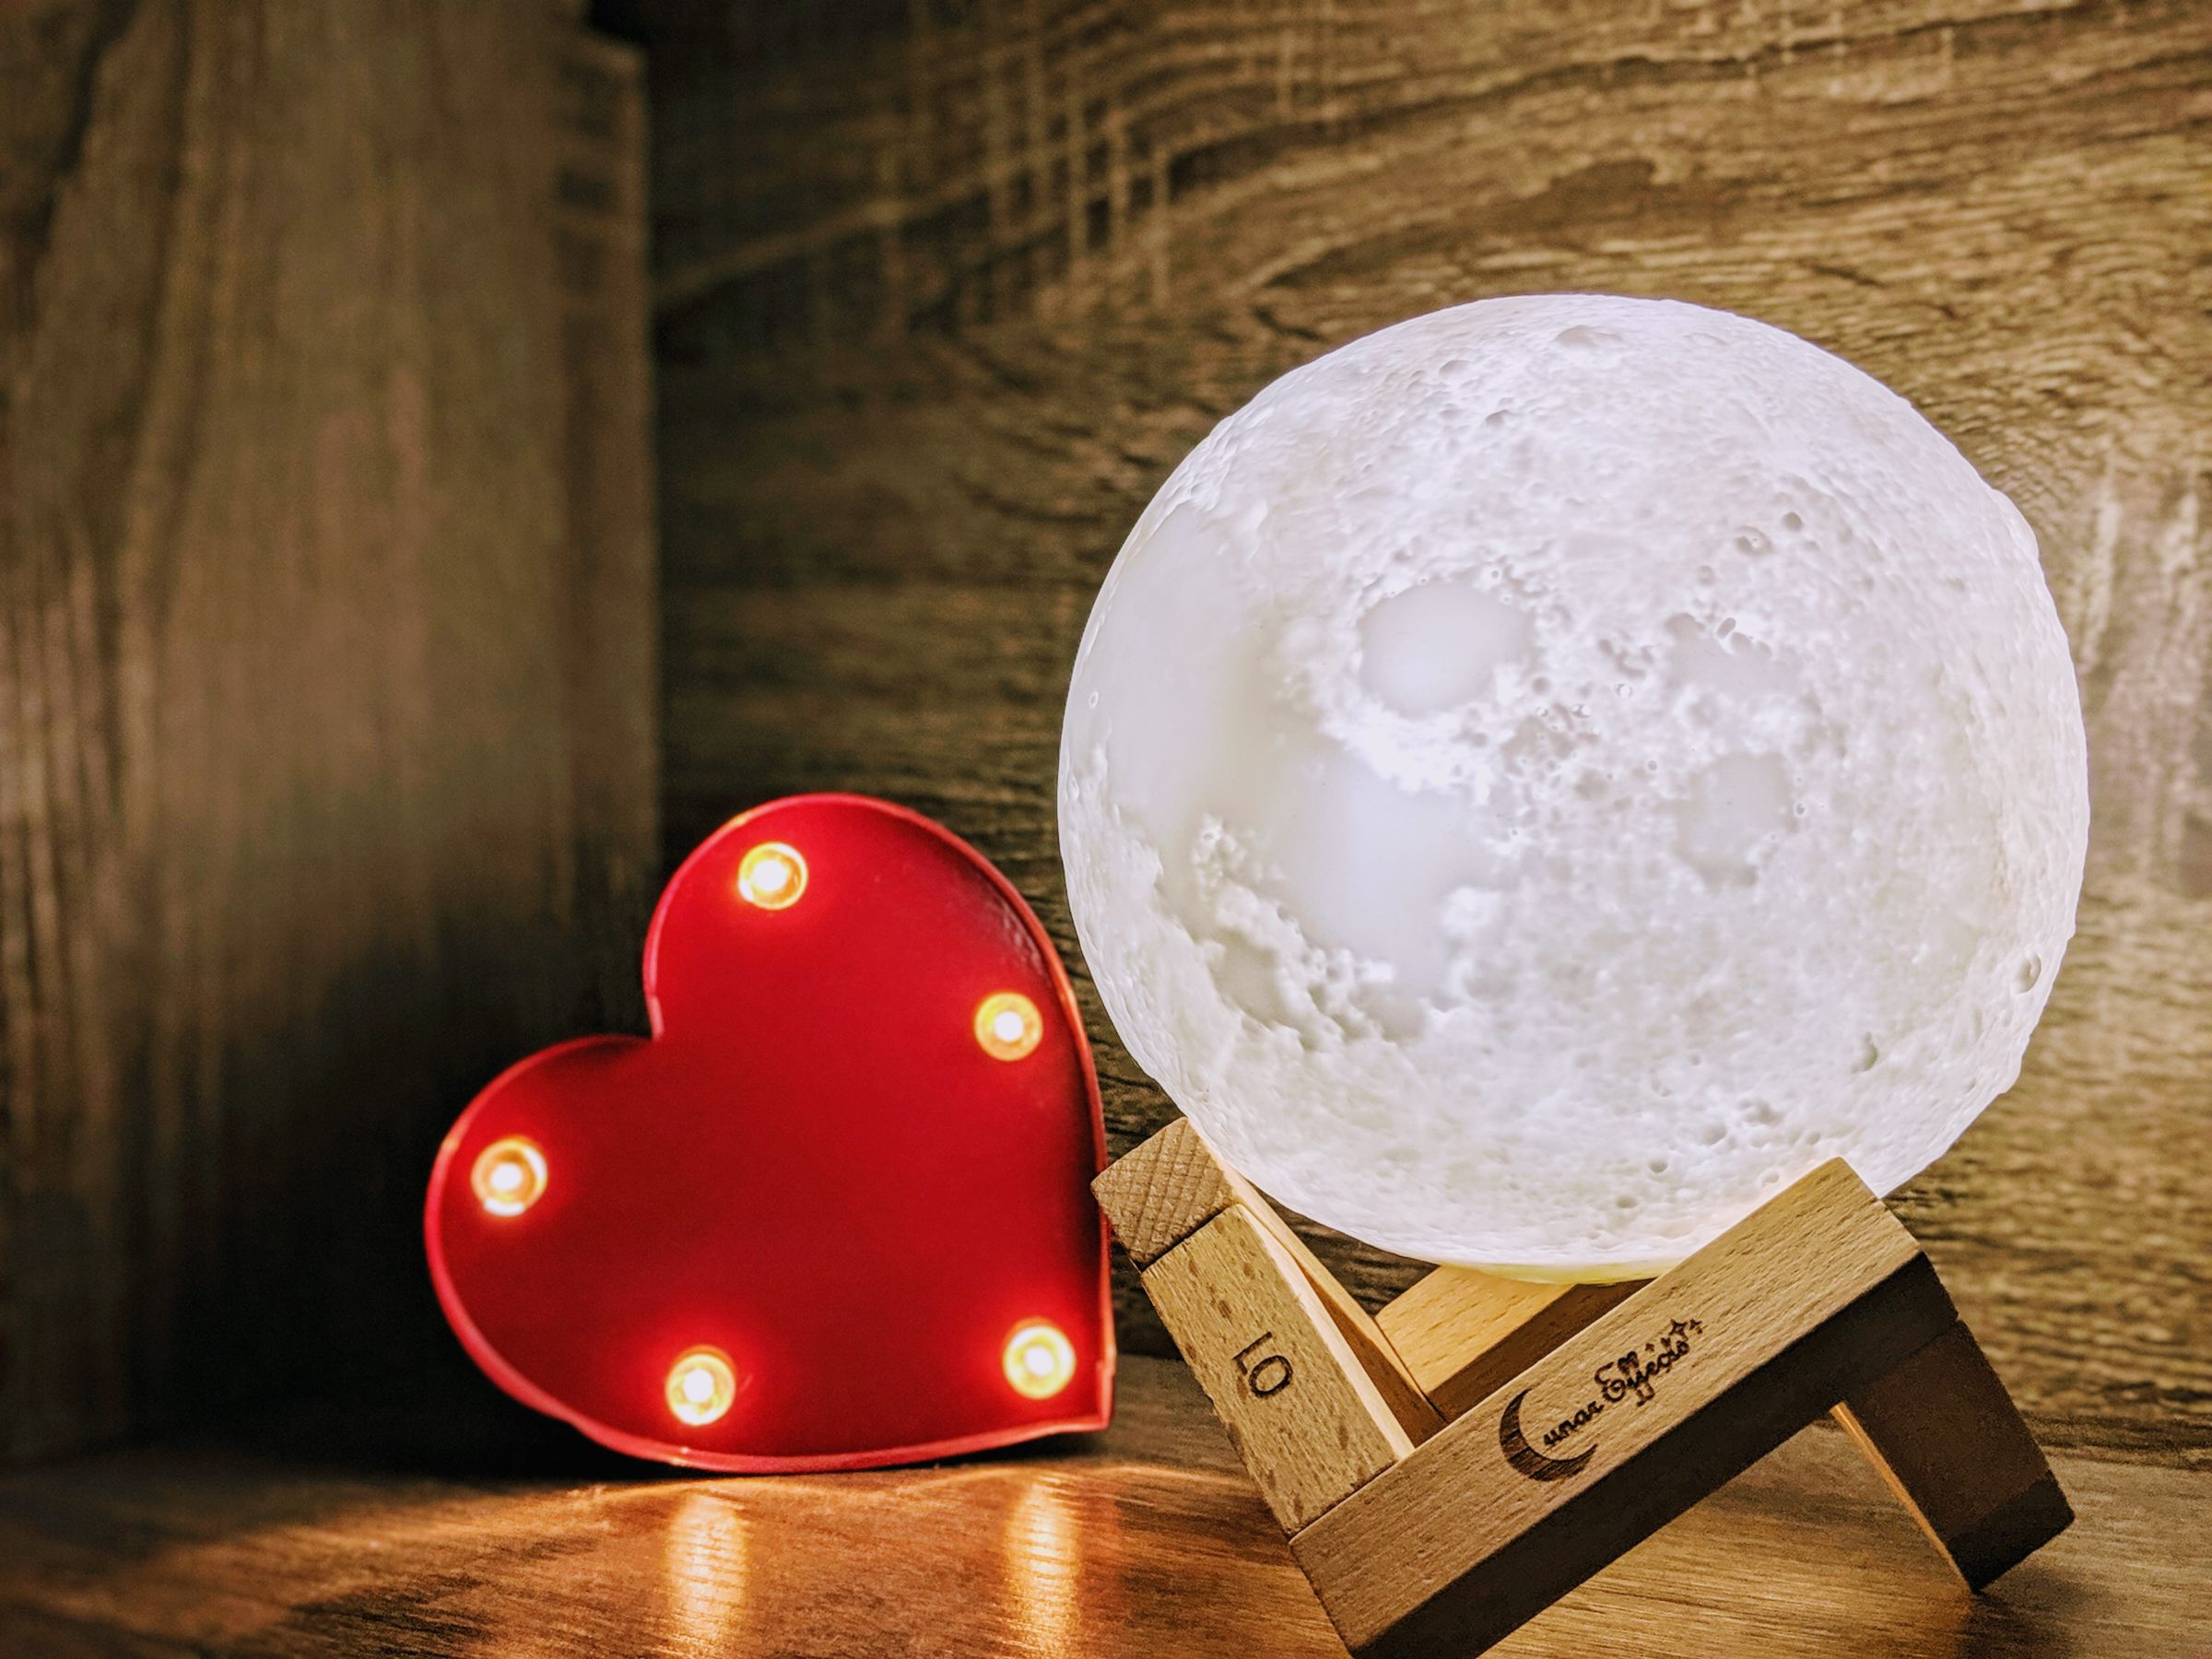 THE BEAUTY OF A LUNAR EFFECTS MOON LAMP